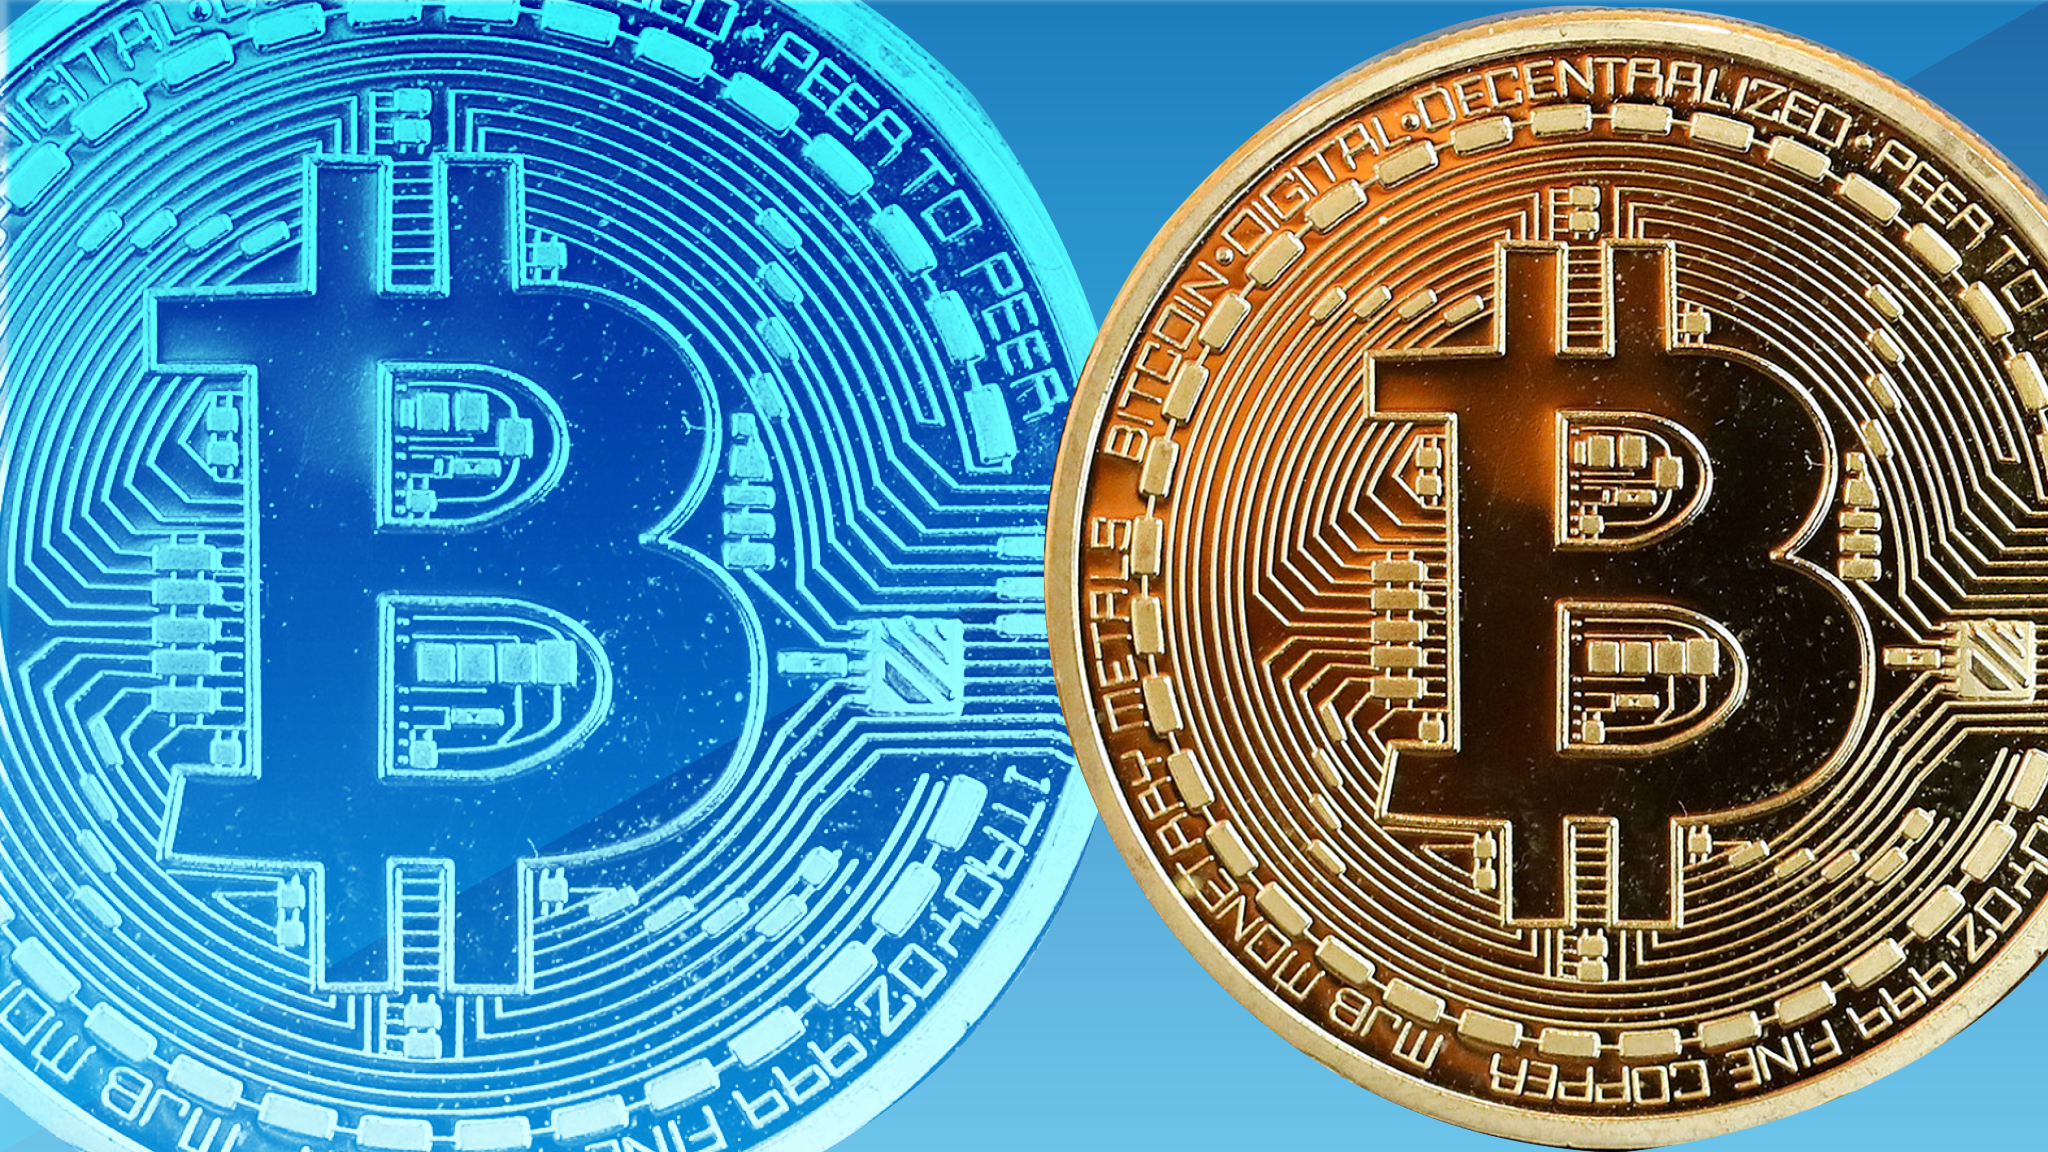 Bitcoin surge prompts legal bid to remove Mt Gox from bankruptcy